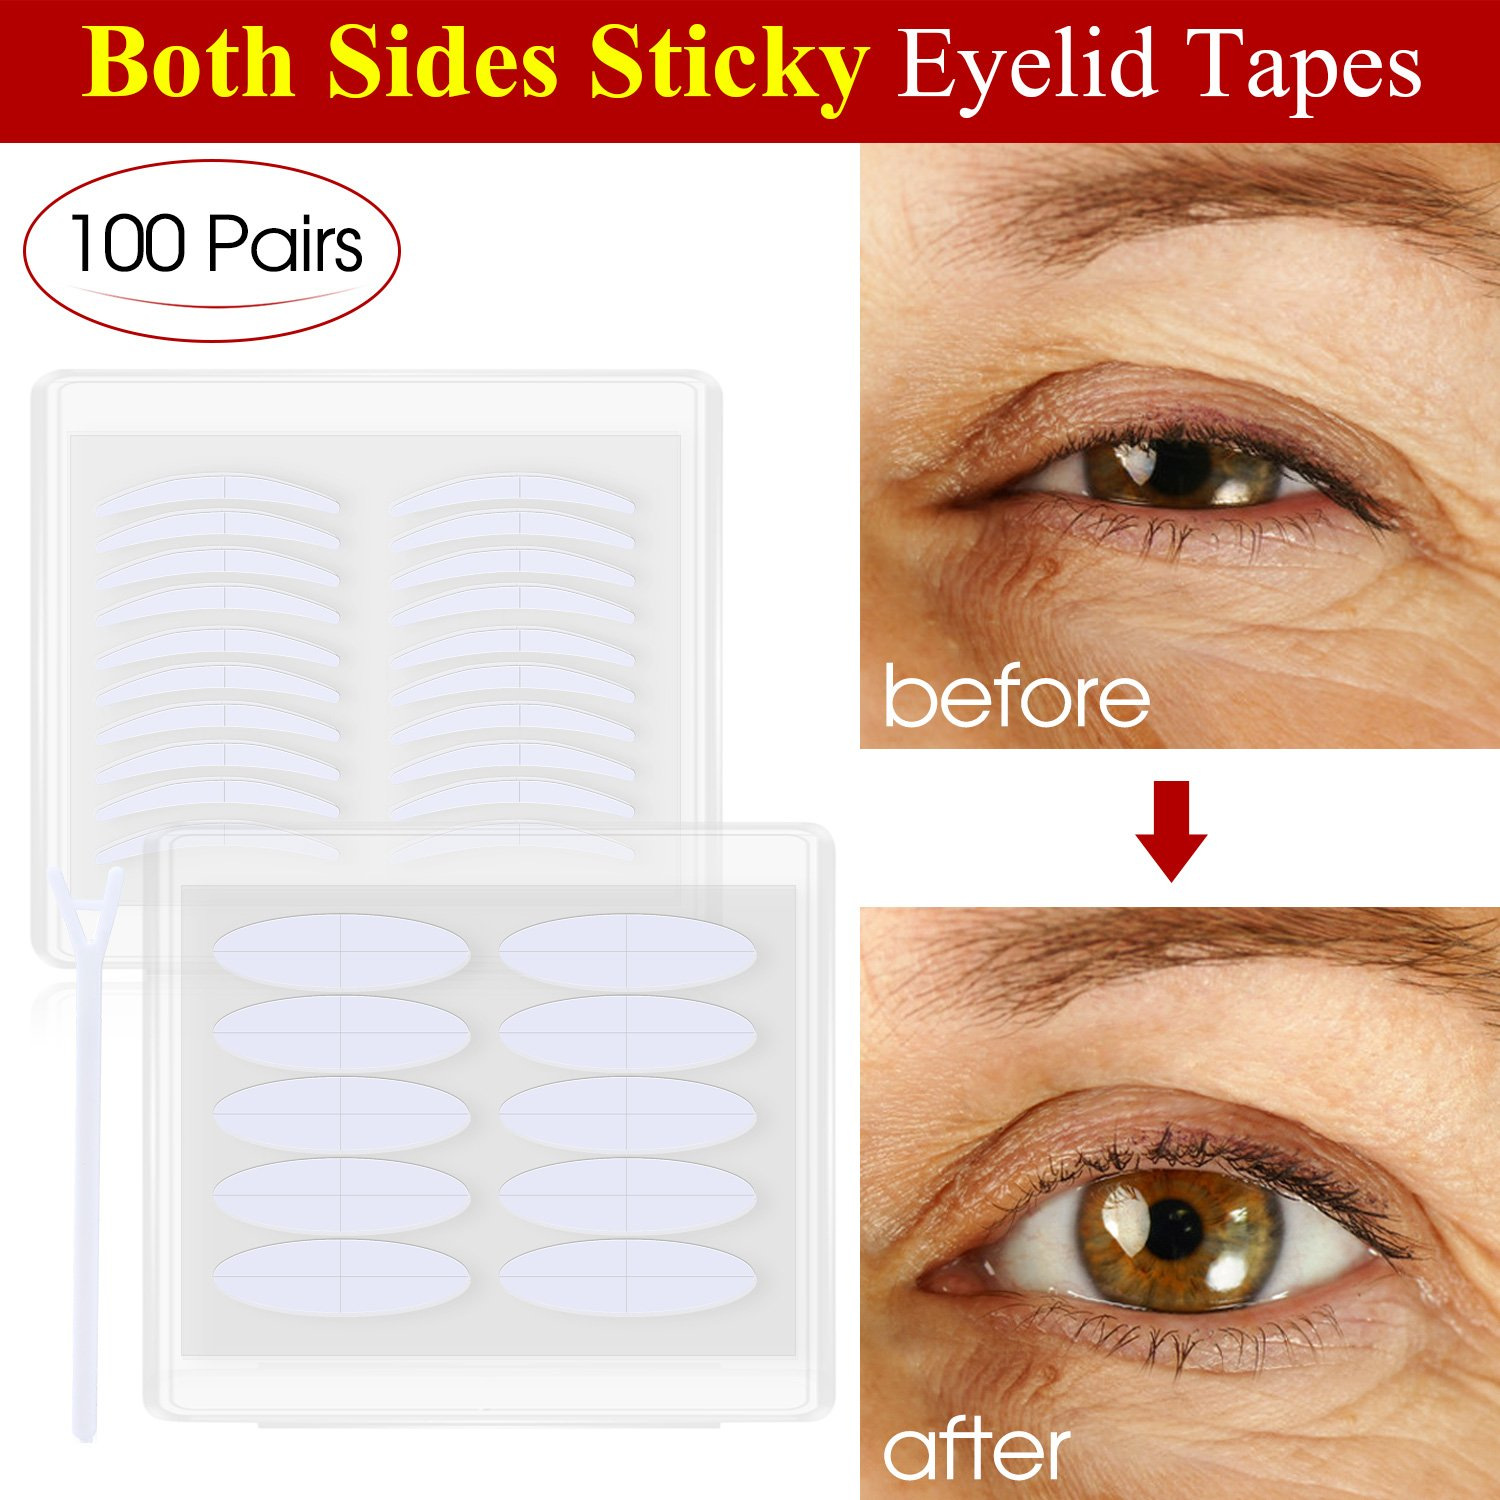 Both Sides Sticky Ultra Invisible Double Eyelid Tape Stickers Instant Eyelid Lift Without Surgery, Medical Grade Latex Free Hypoallergenic, Perfect for Hooded, Droopy, Uneven, Mono-eyelids (100 Pairs, Wide+Slim) Pormasbenzer